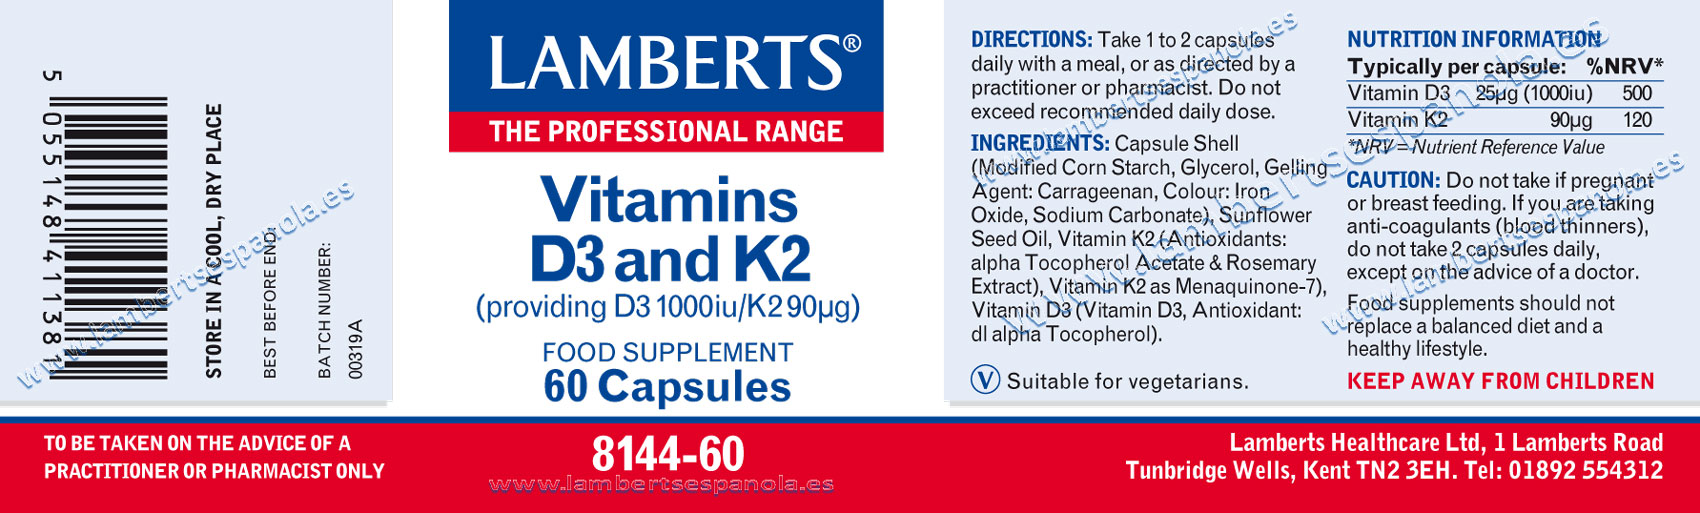 Vitamins D3+ K2 properties